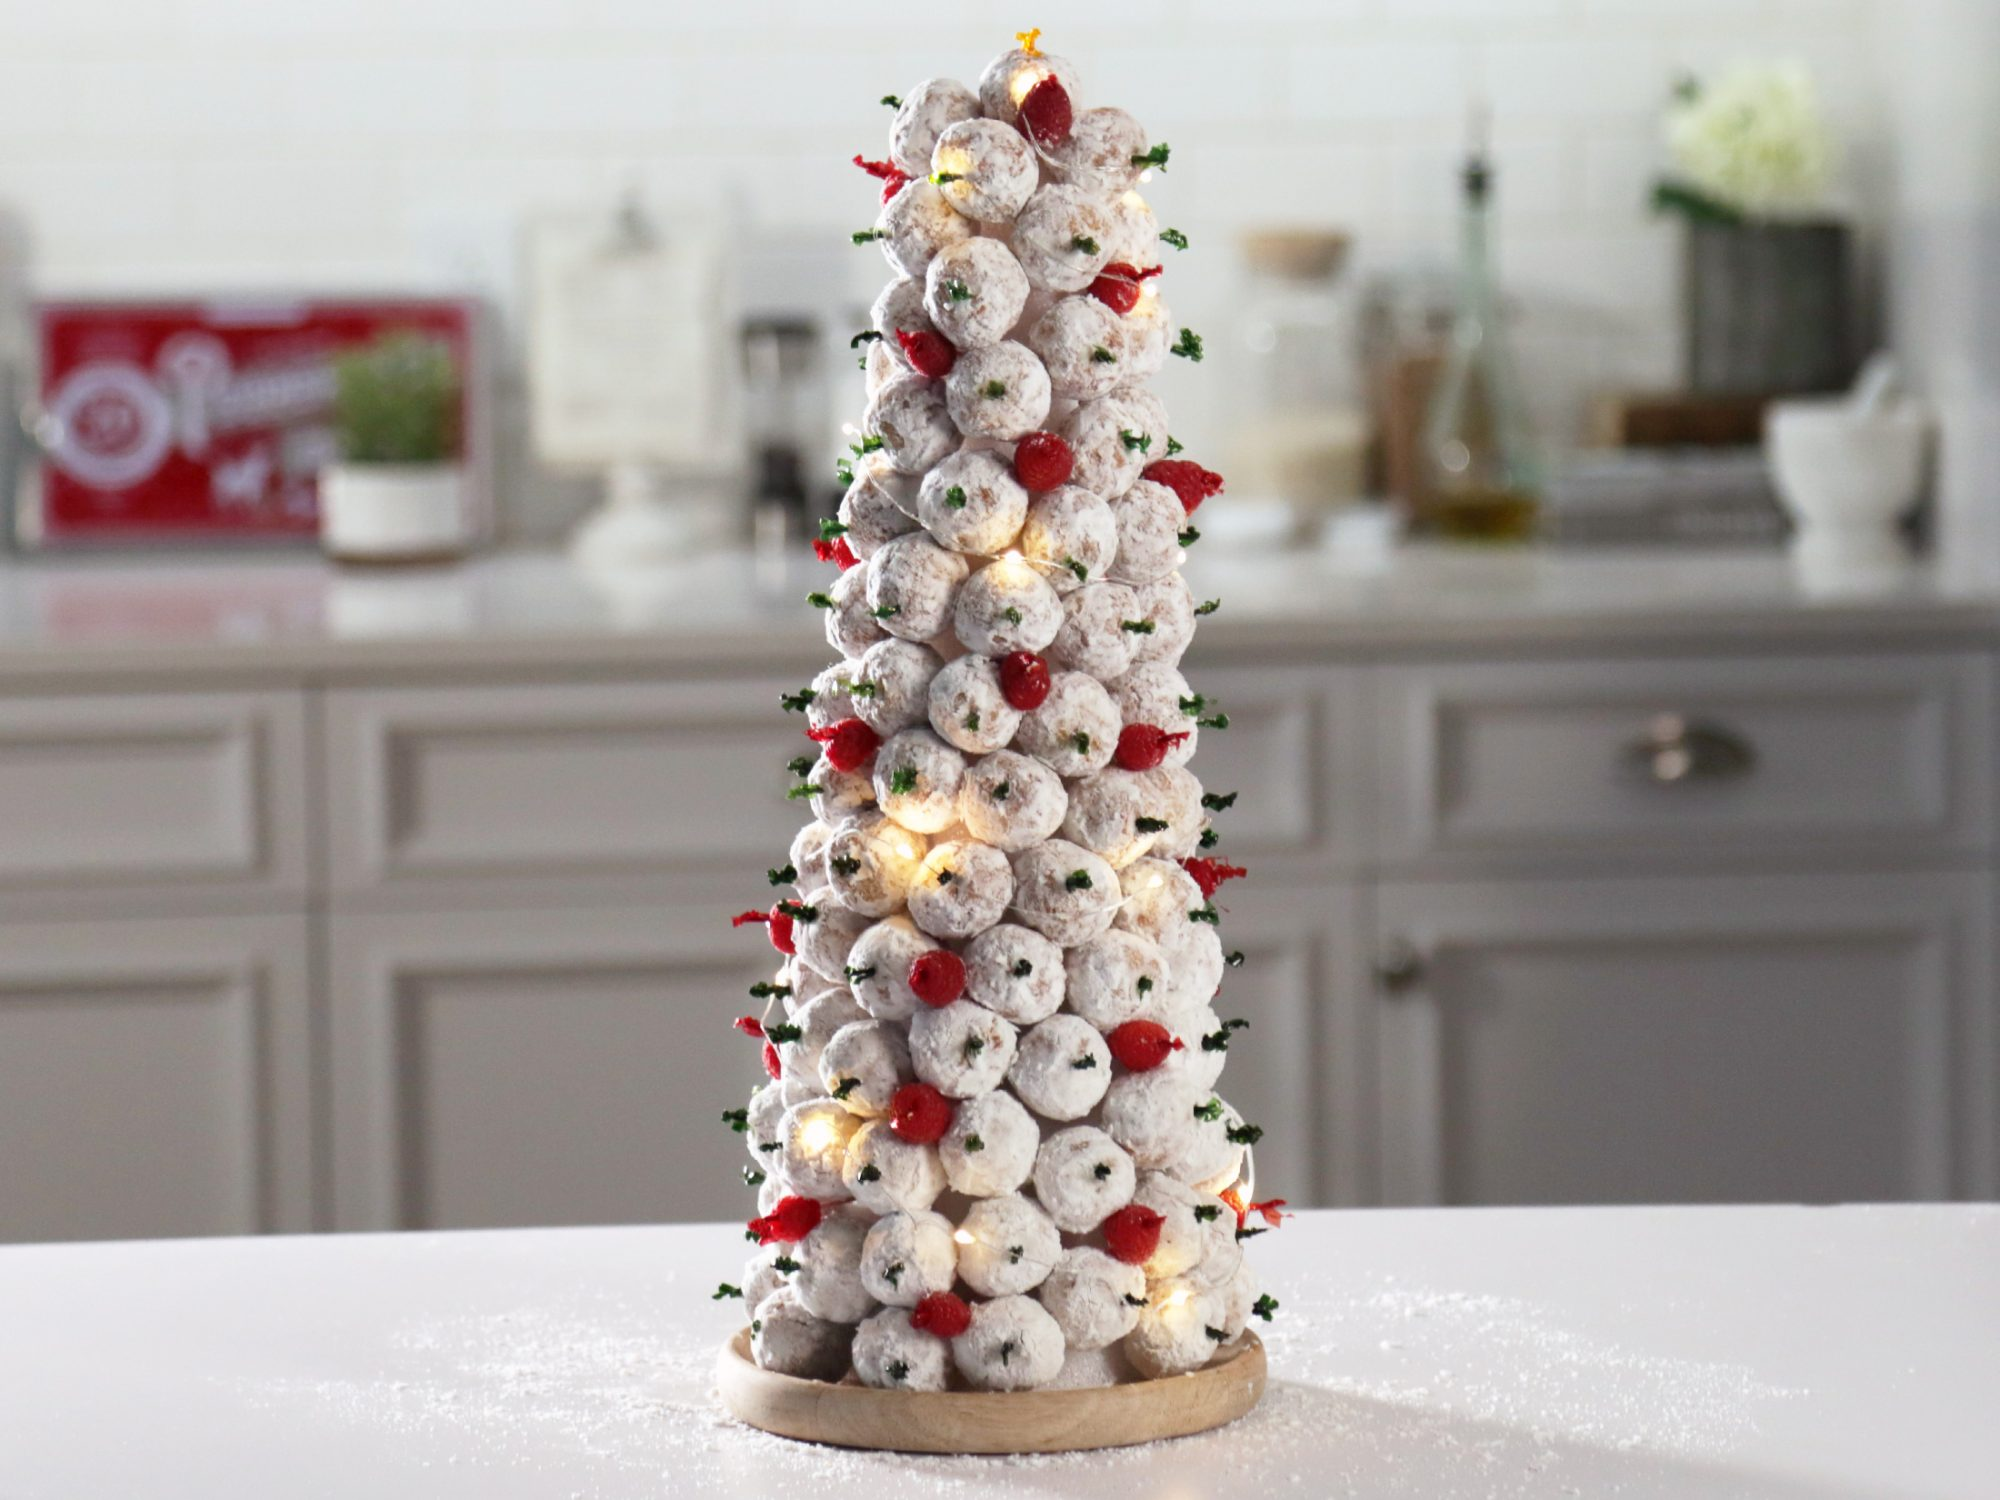 Donut Hole Christmas Tree image